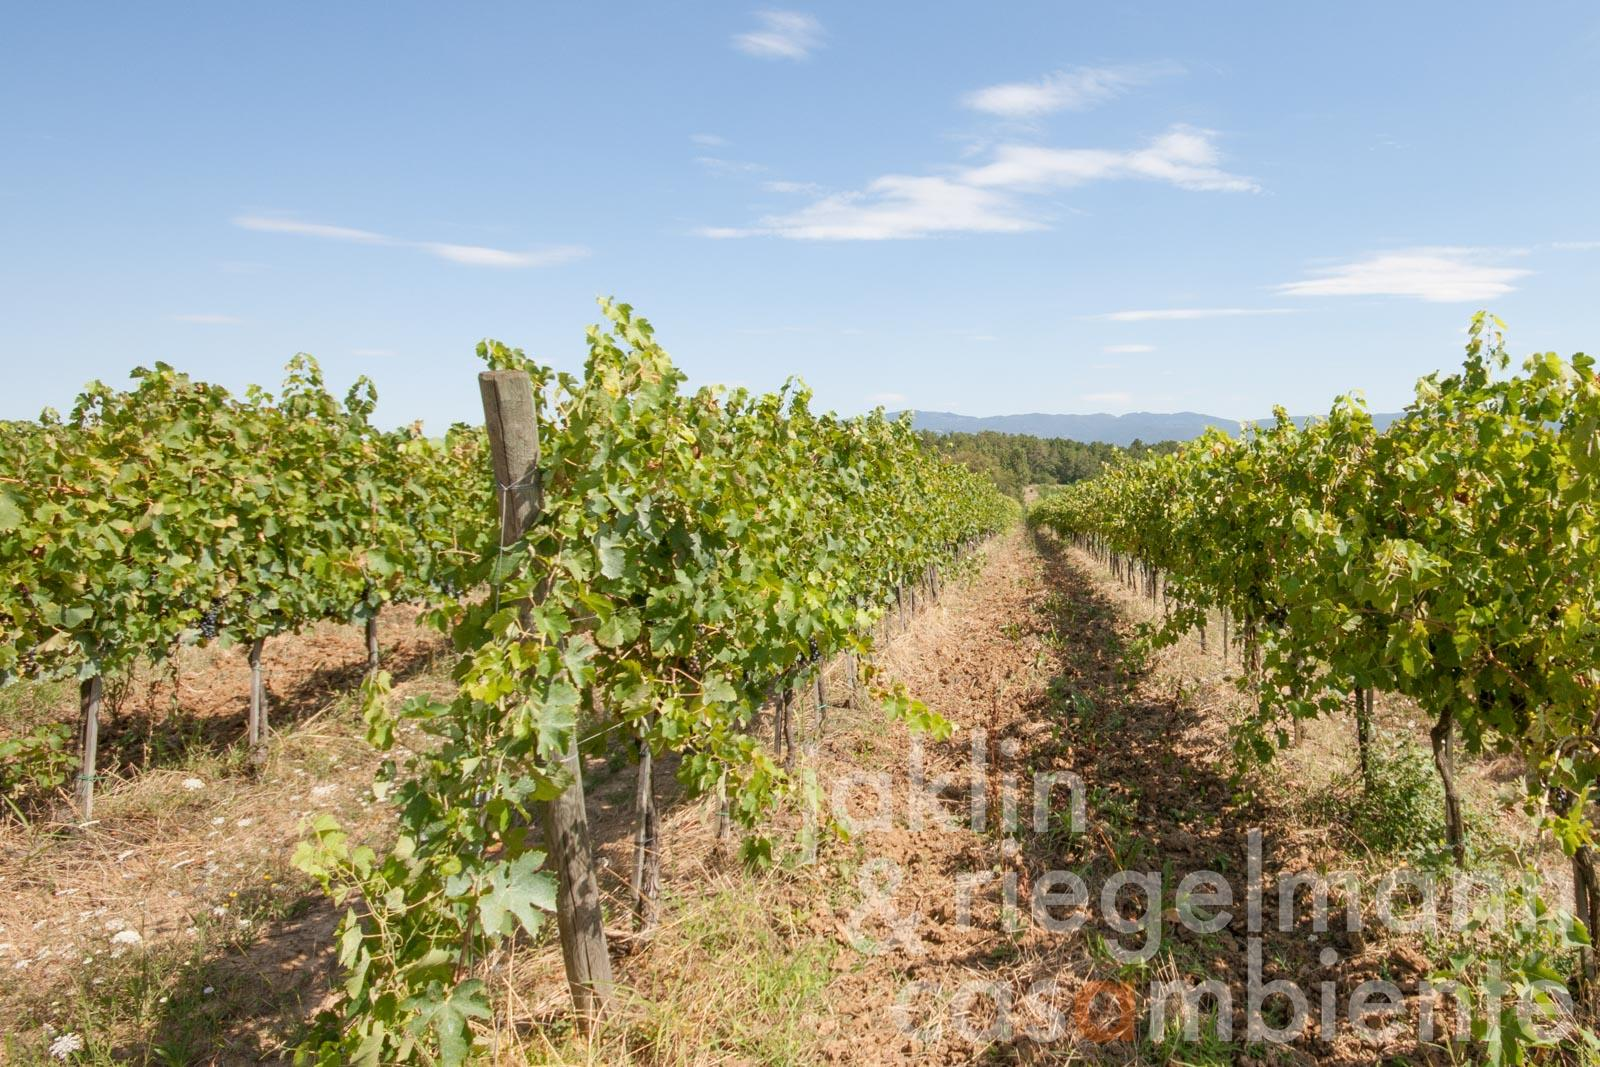 Winery for sale in Italy, Tuscany, Siena, Montepulciano, Well-known